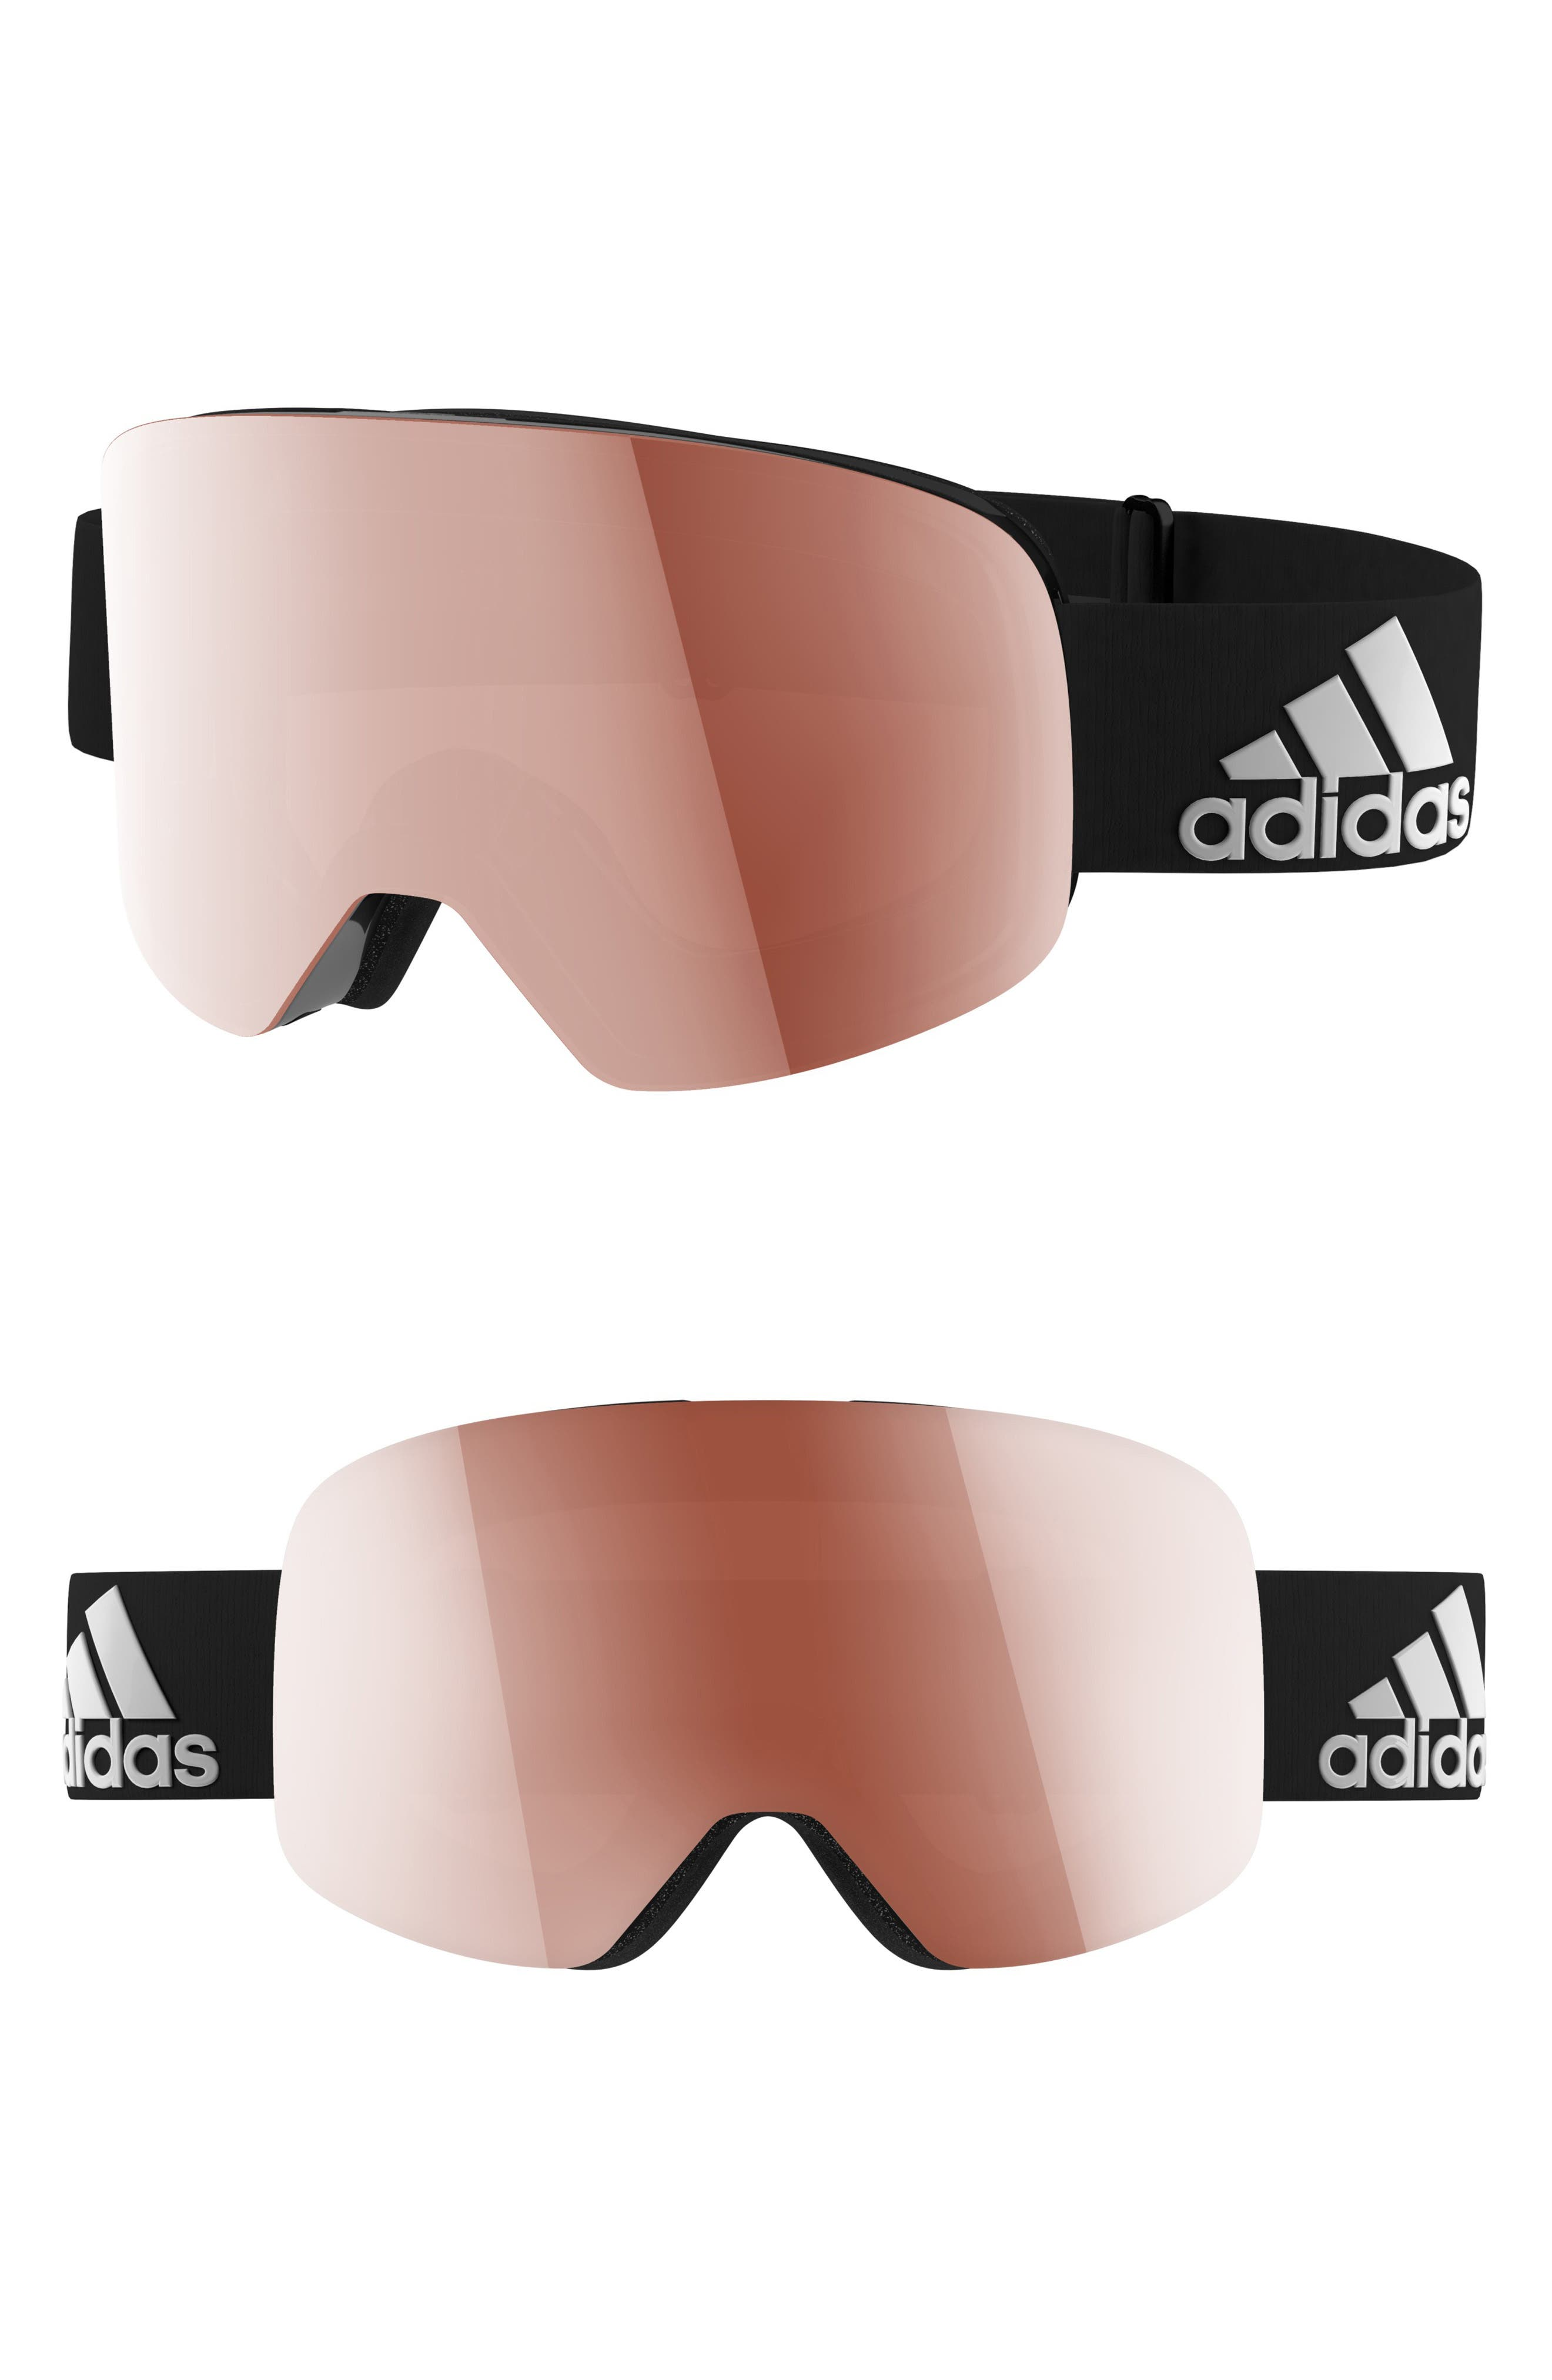 Backland Spherical Snowsports Goggles,                         Main,                         color, SHINY BLACK/ ACTIVE SILVER